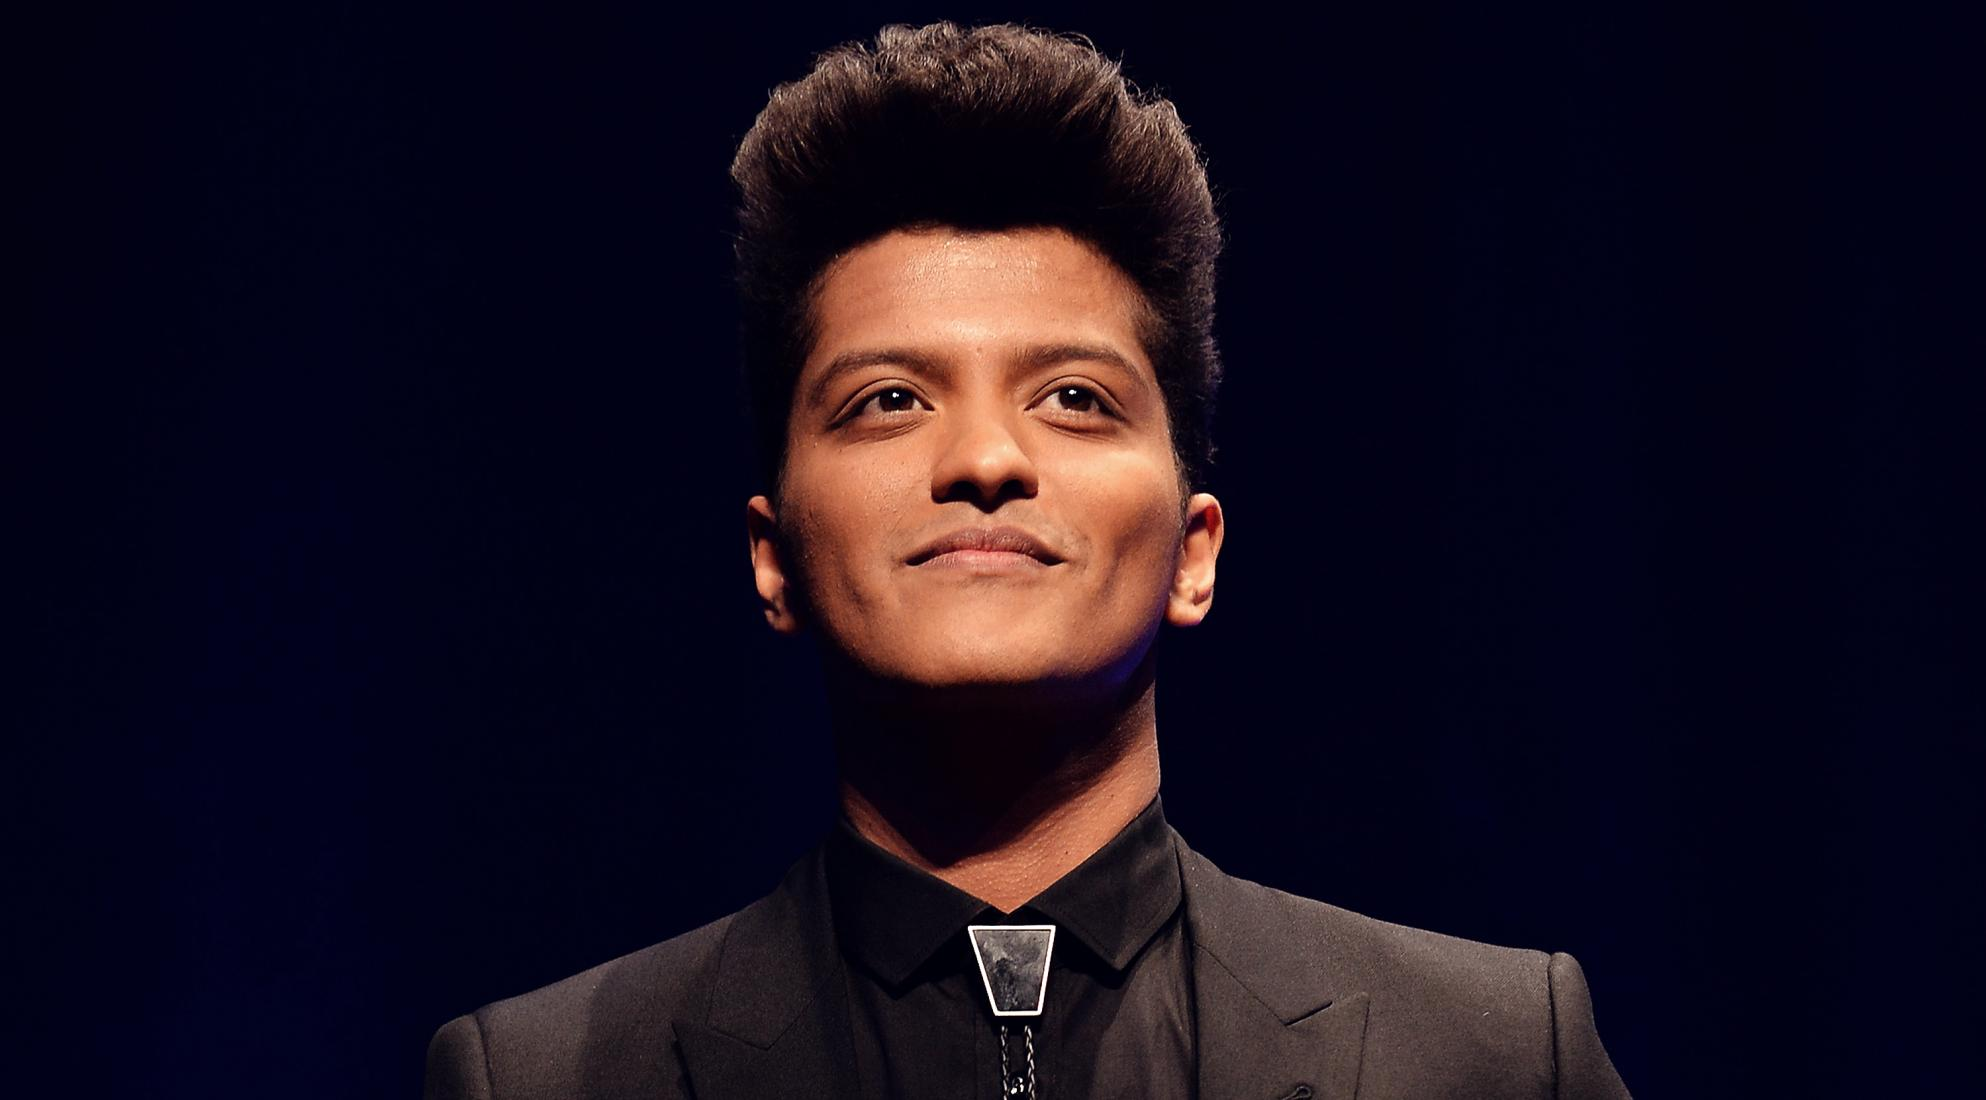 bruno mars on planet mars - photo #22